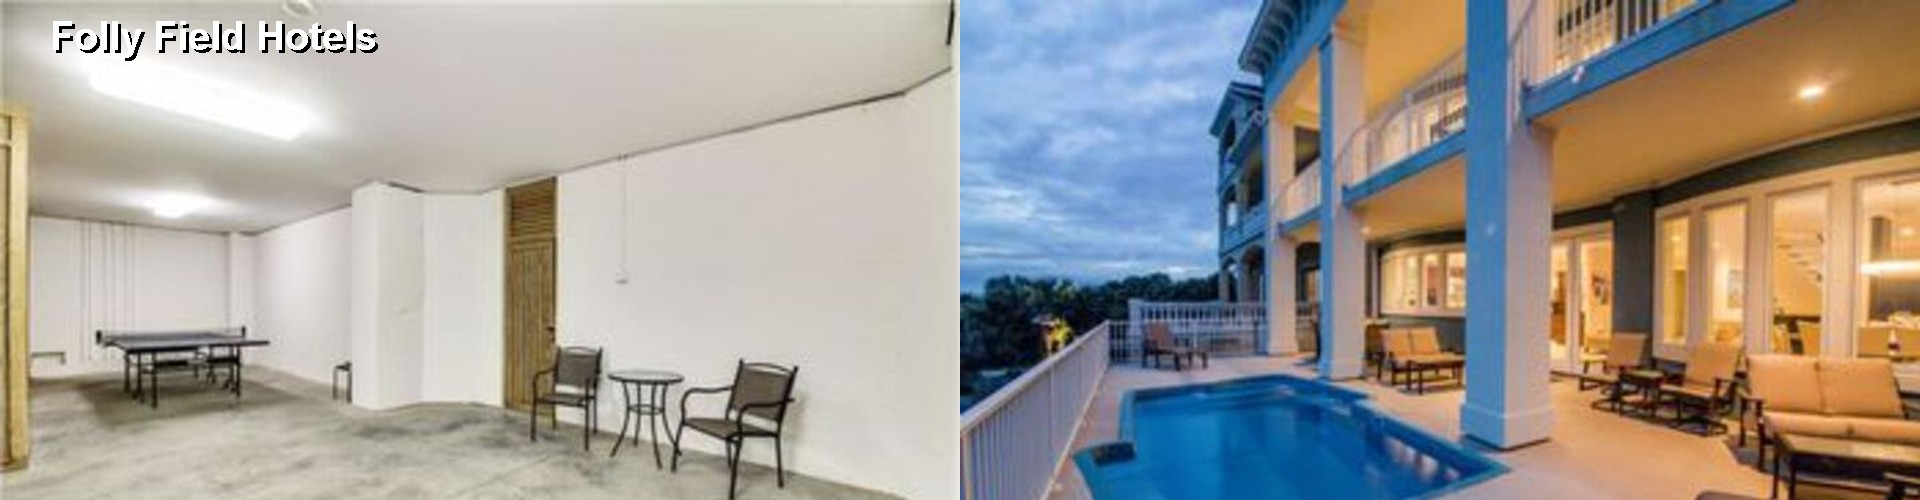 5 Best Hotels near Folly Field